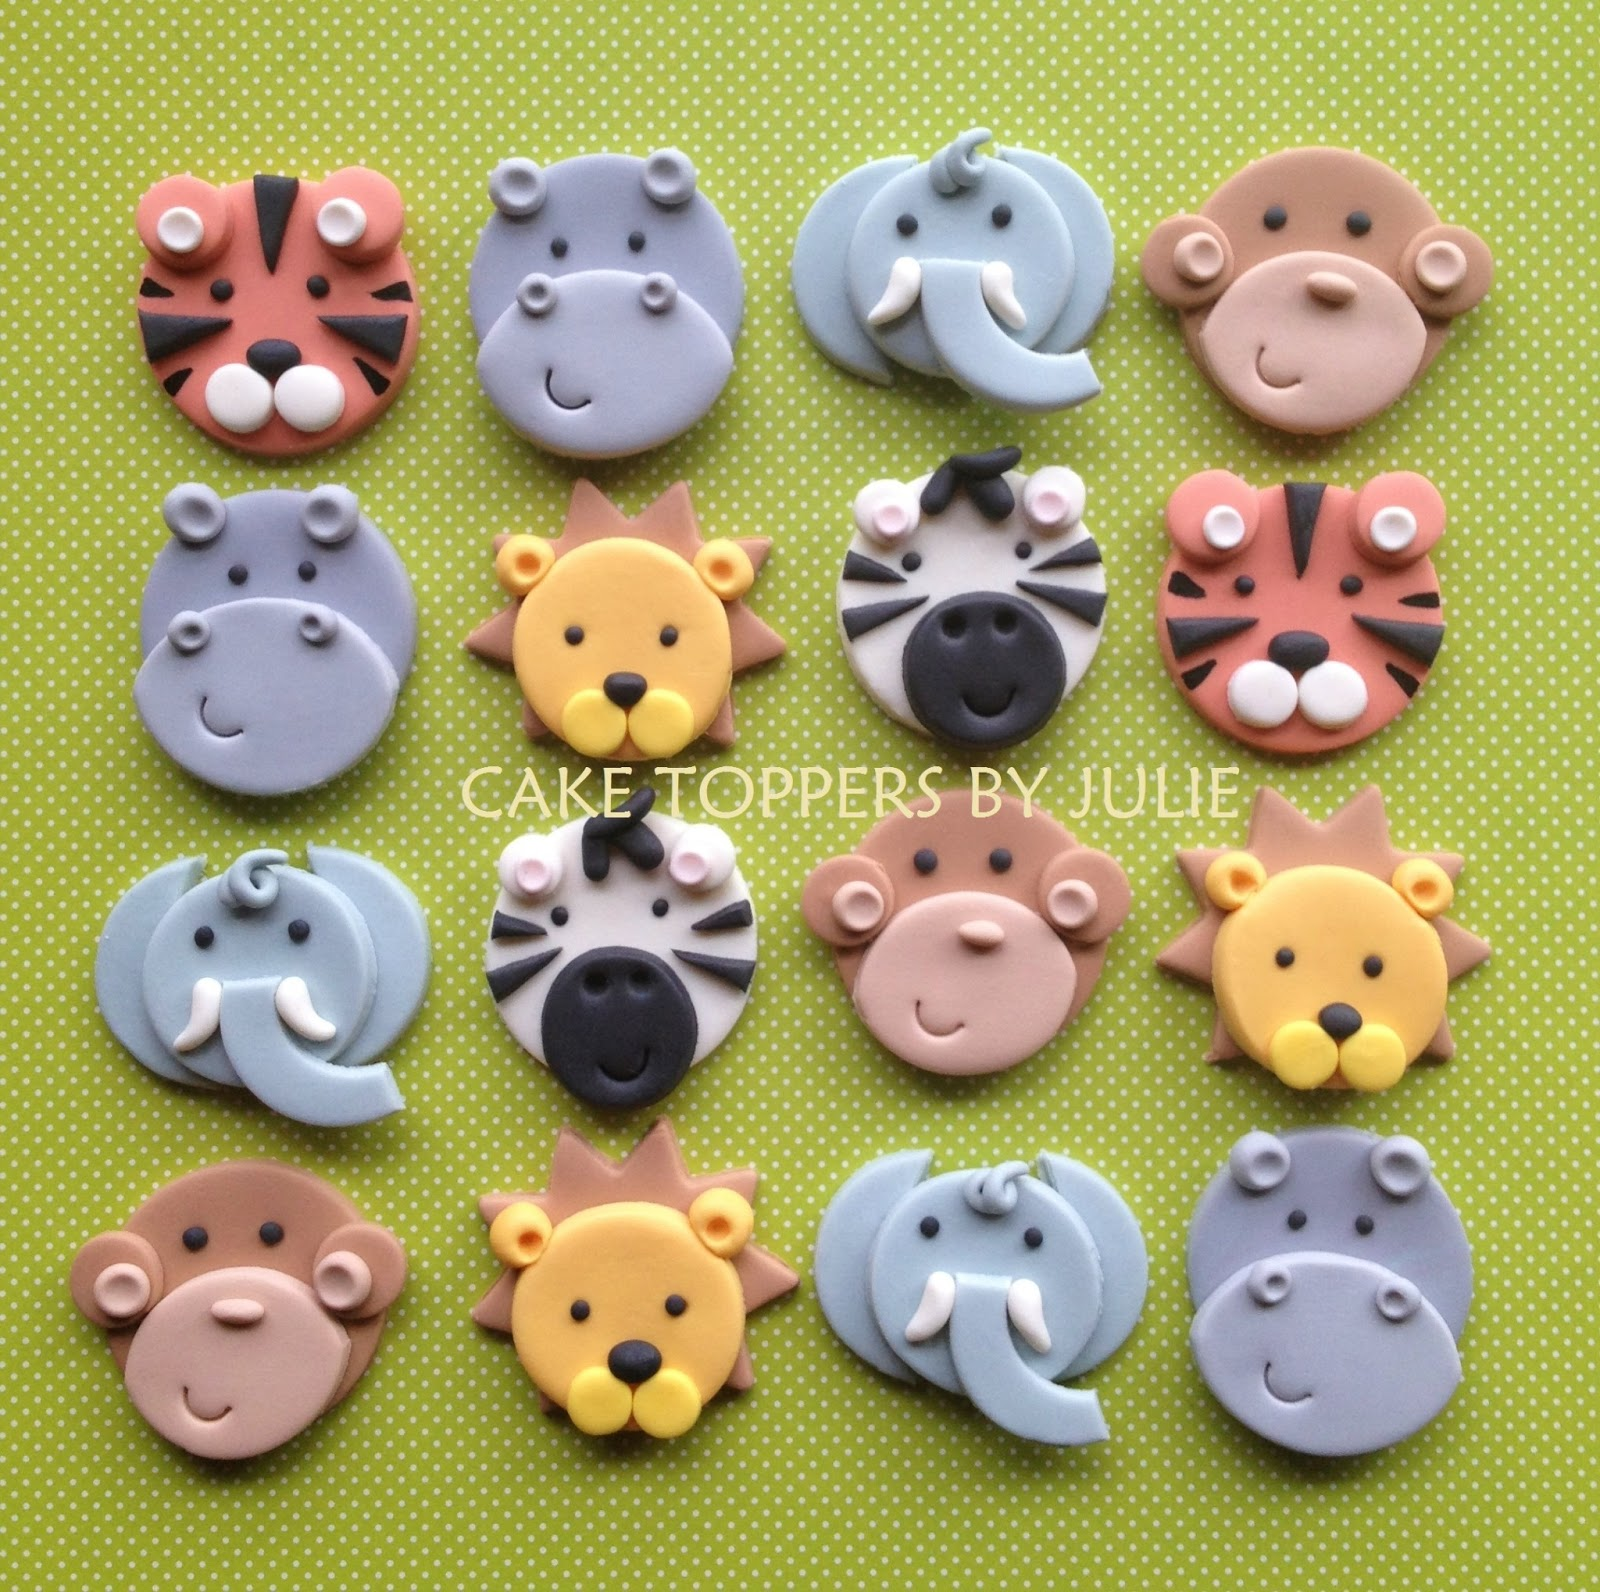 How To Make Fondant Jungle Animal Cake Toppers